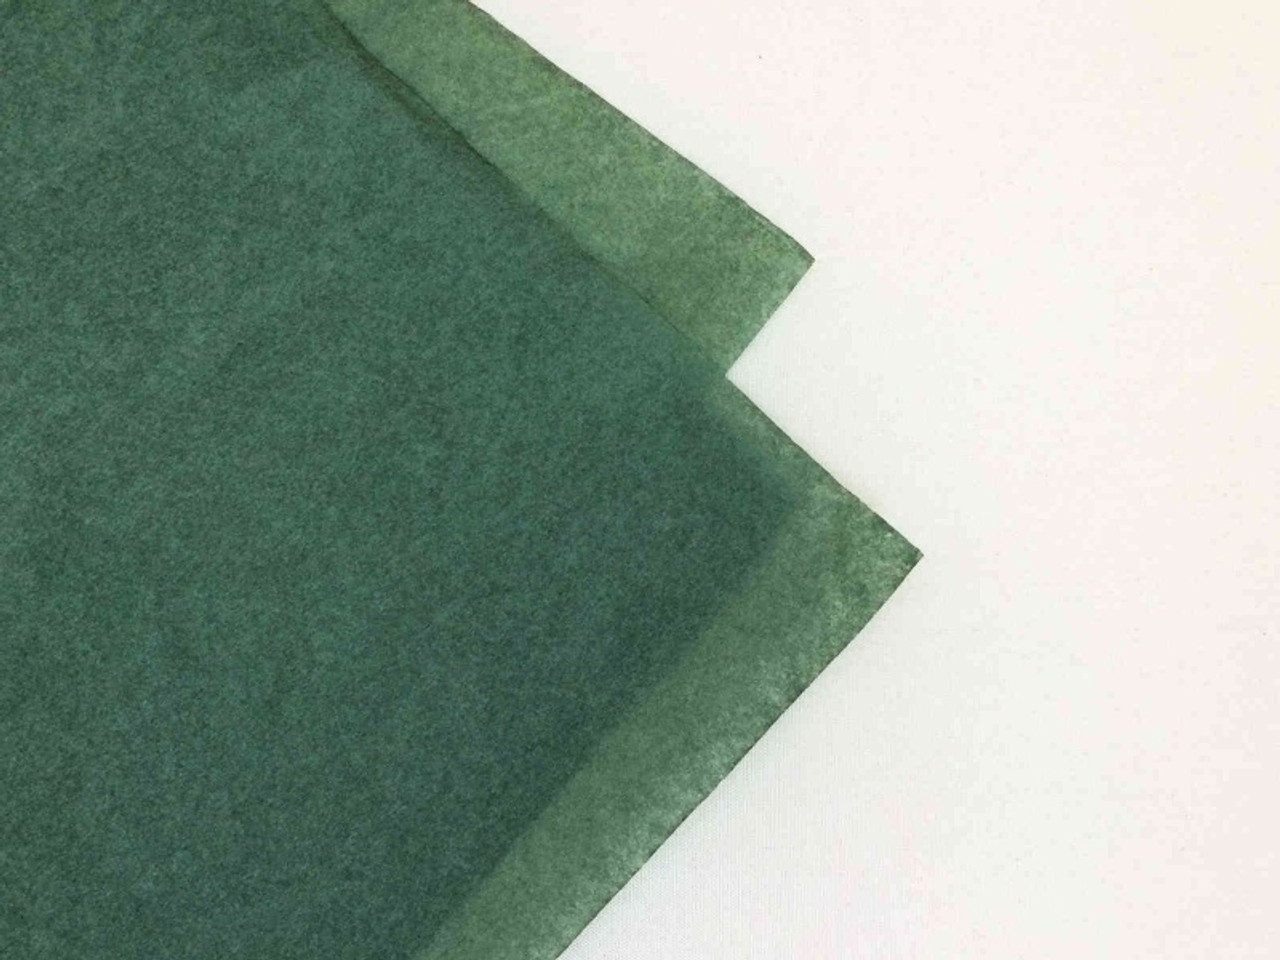 Domestic Tissue - Racing Green